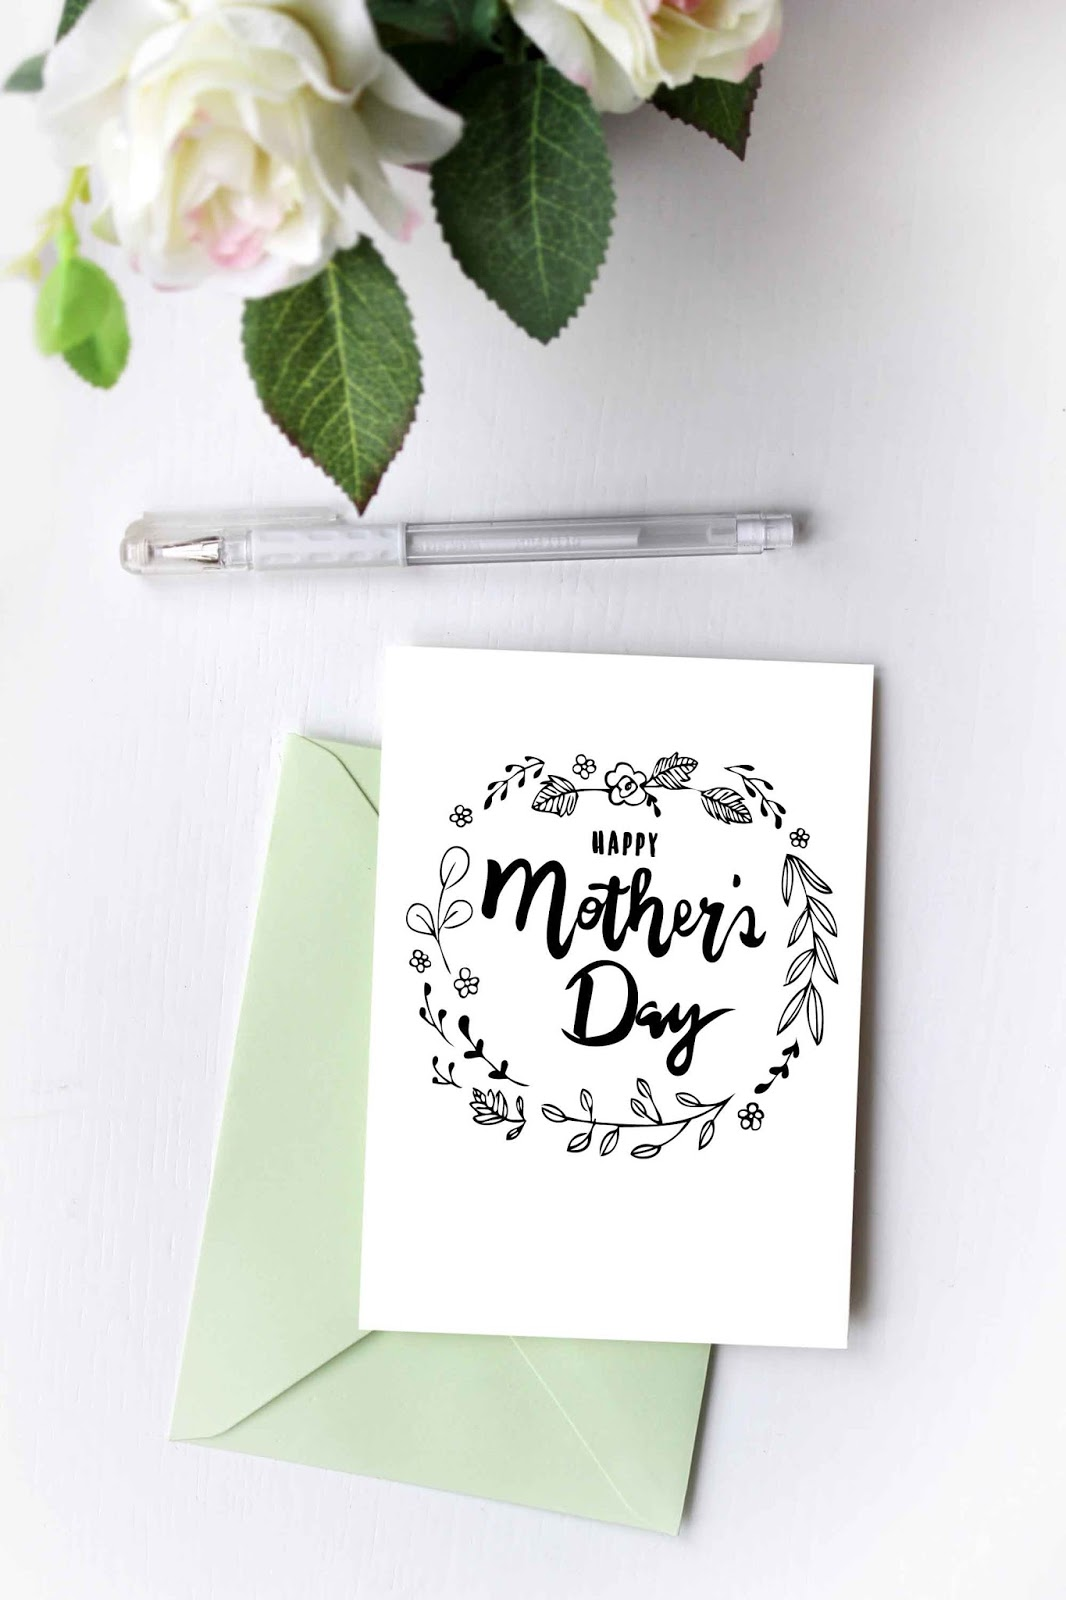 photo regarding Happy Mothers Day Printable Card named Do-it-yourself Joyful Moms Working day Card Colouring Printable - Ting and